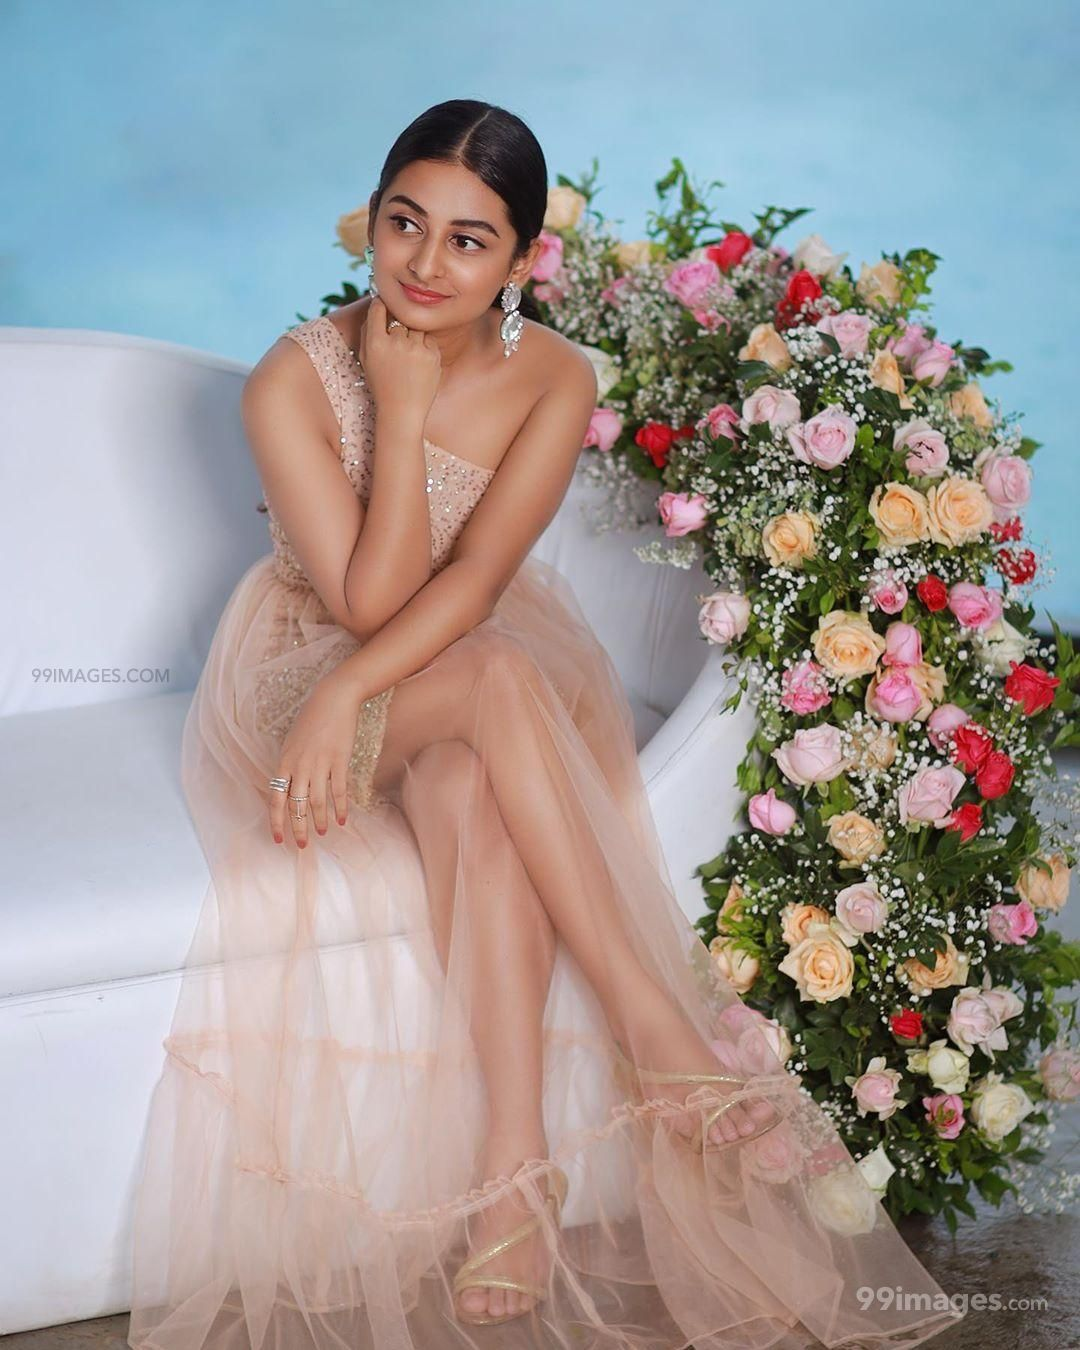 Esther Anil Hot HD Photos, Wallpapers, WhatsApp DP (1080p) (590083) - Esther Anil